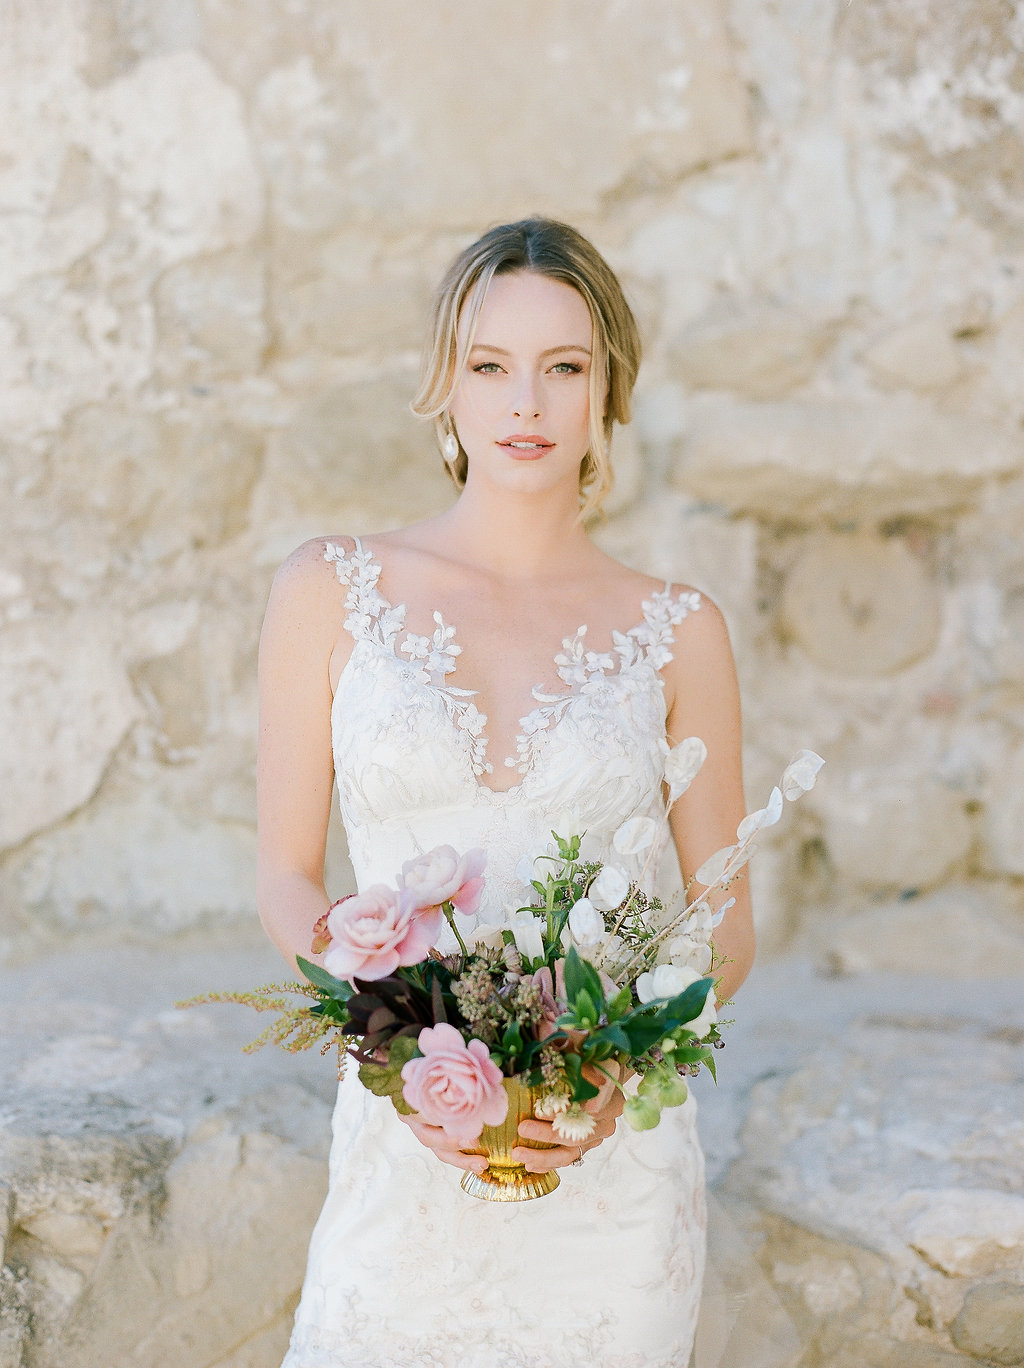 Spanish Mission Style Wedding Ideas Summer Flowers Finding Flora San Juan Capistrano European Venues California Bride Centerpiece Lunaria